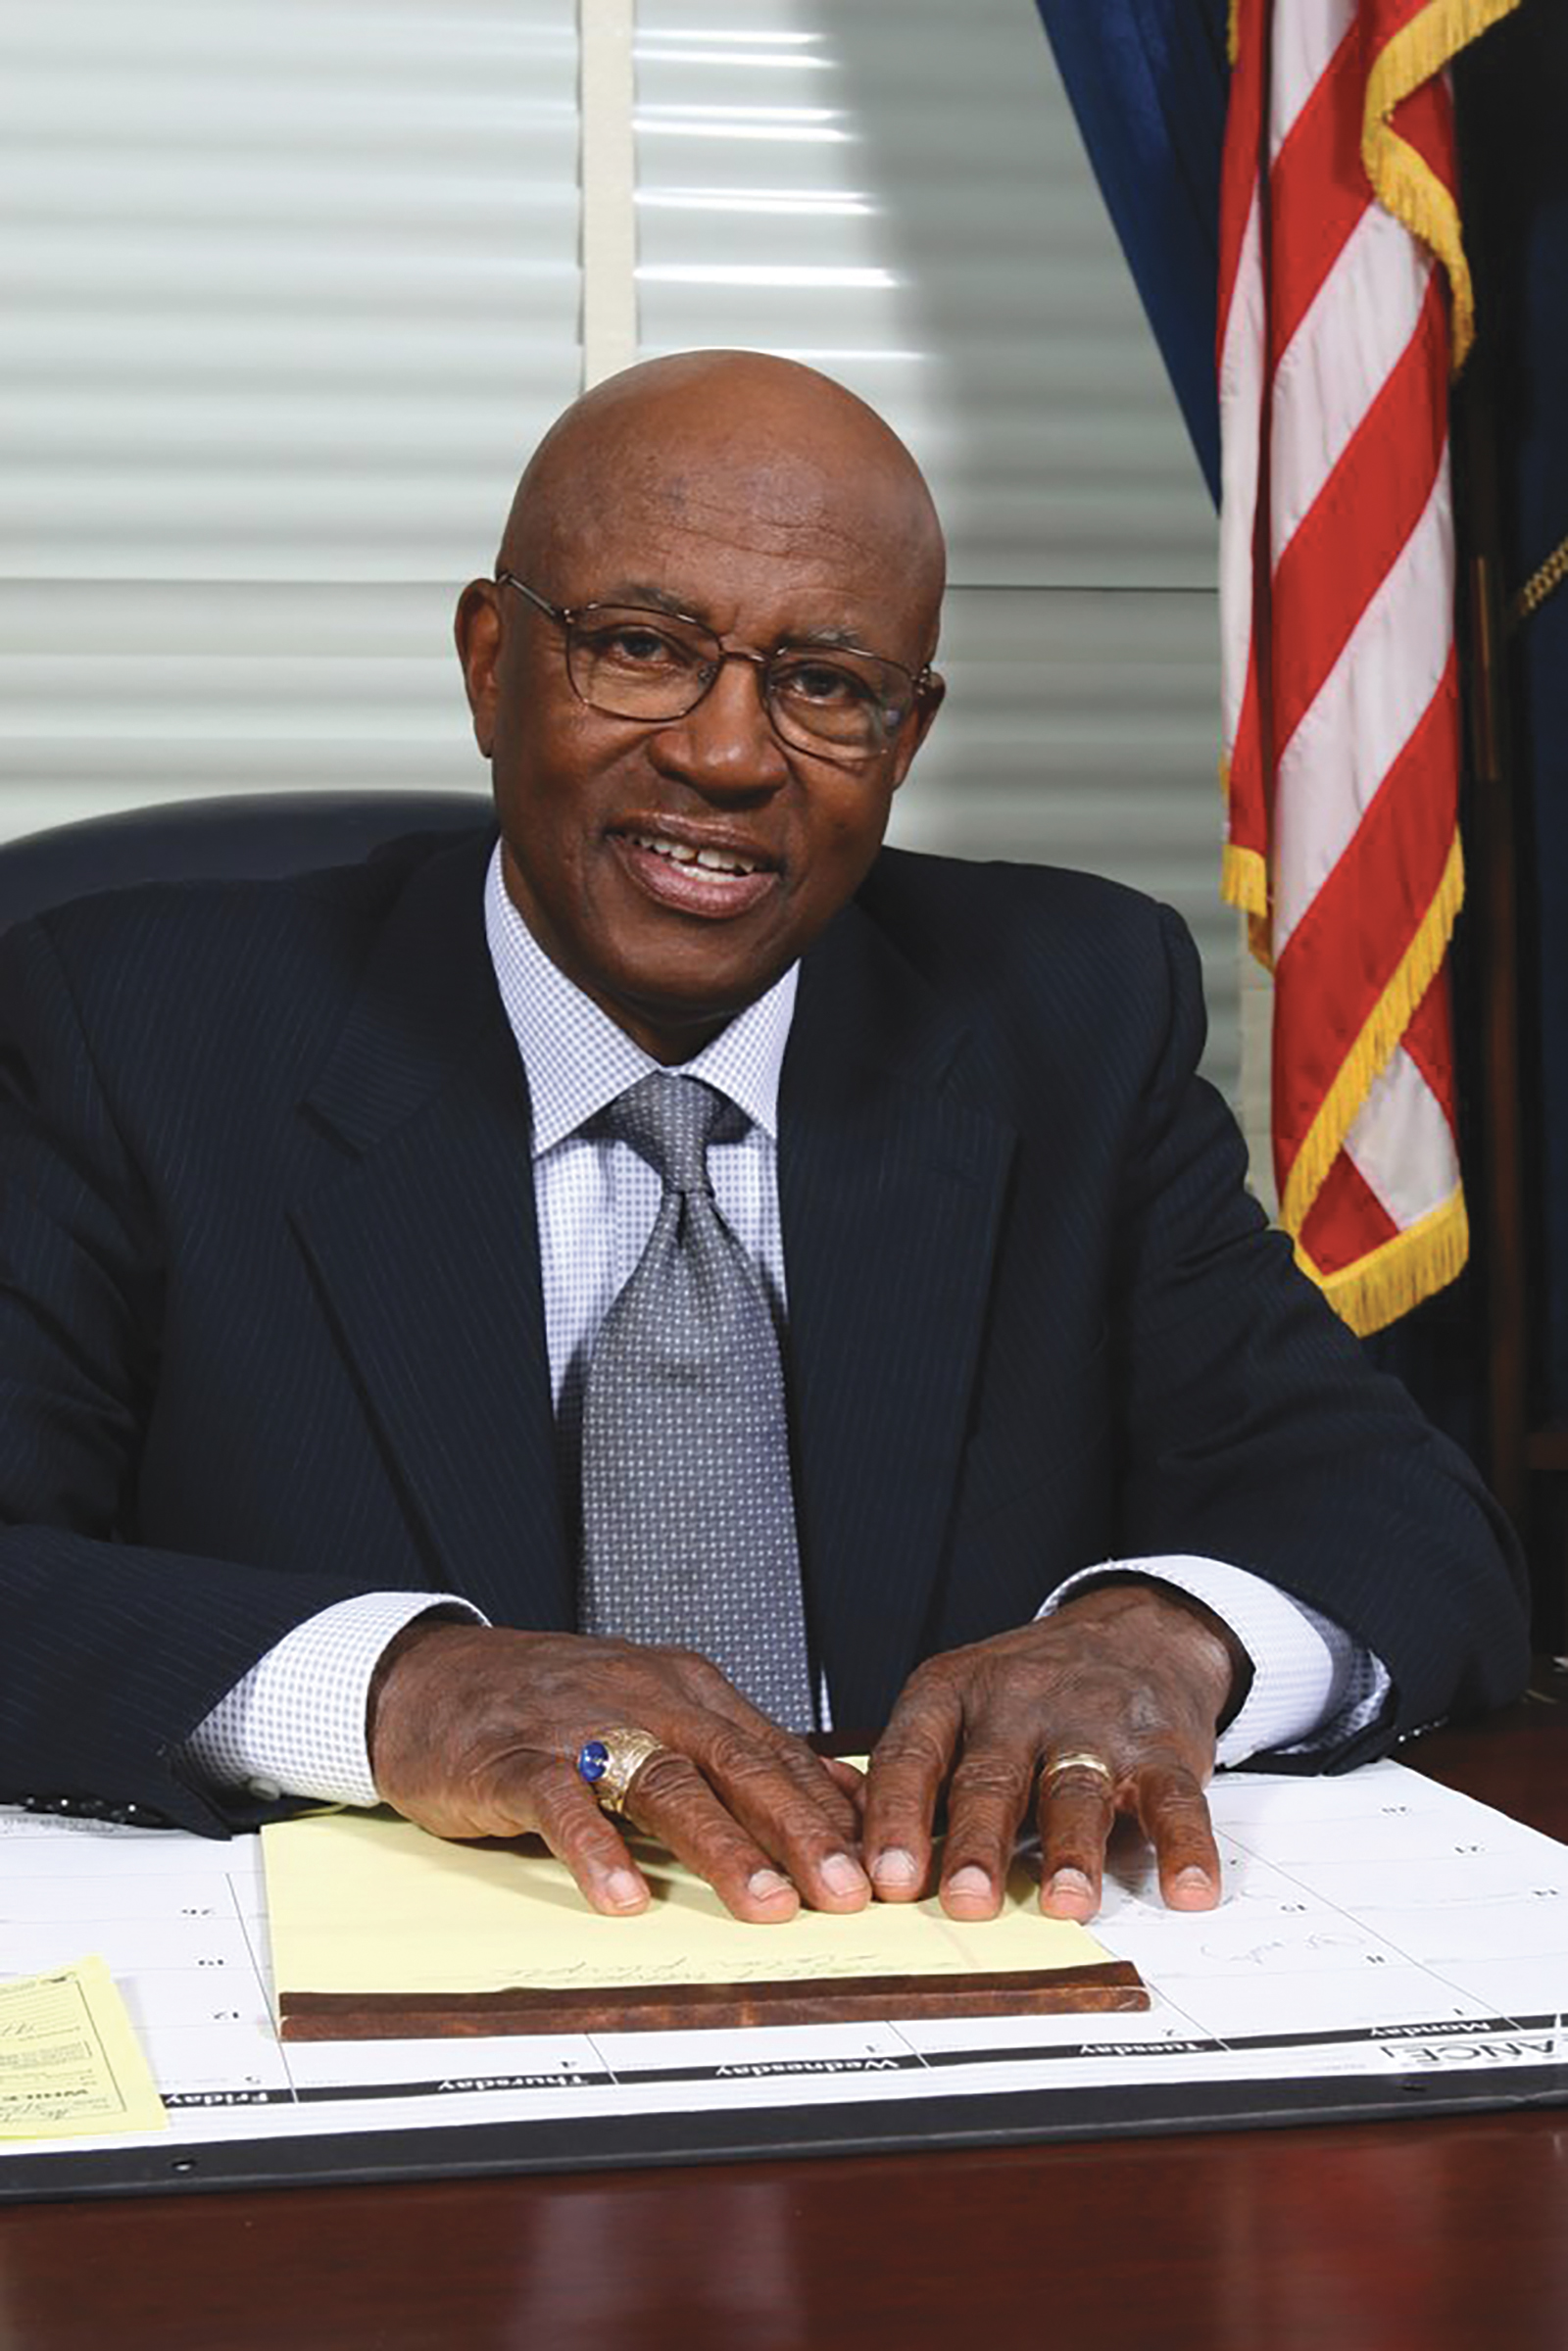 Rep. Edolphus Towns is a board member of World Business Lenders. He represented the 10th and 11th congressional districts in New York from 1983-2013. (Courtesy Photo)